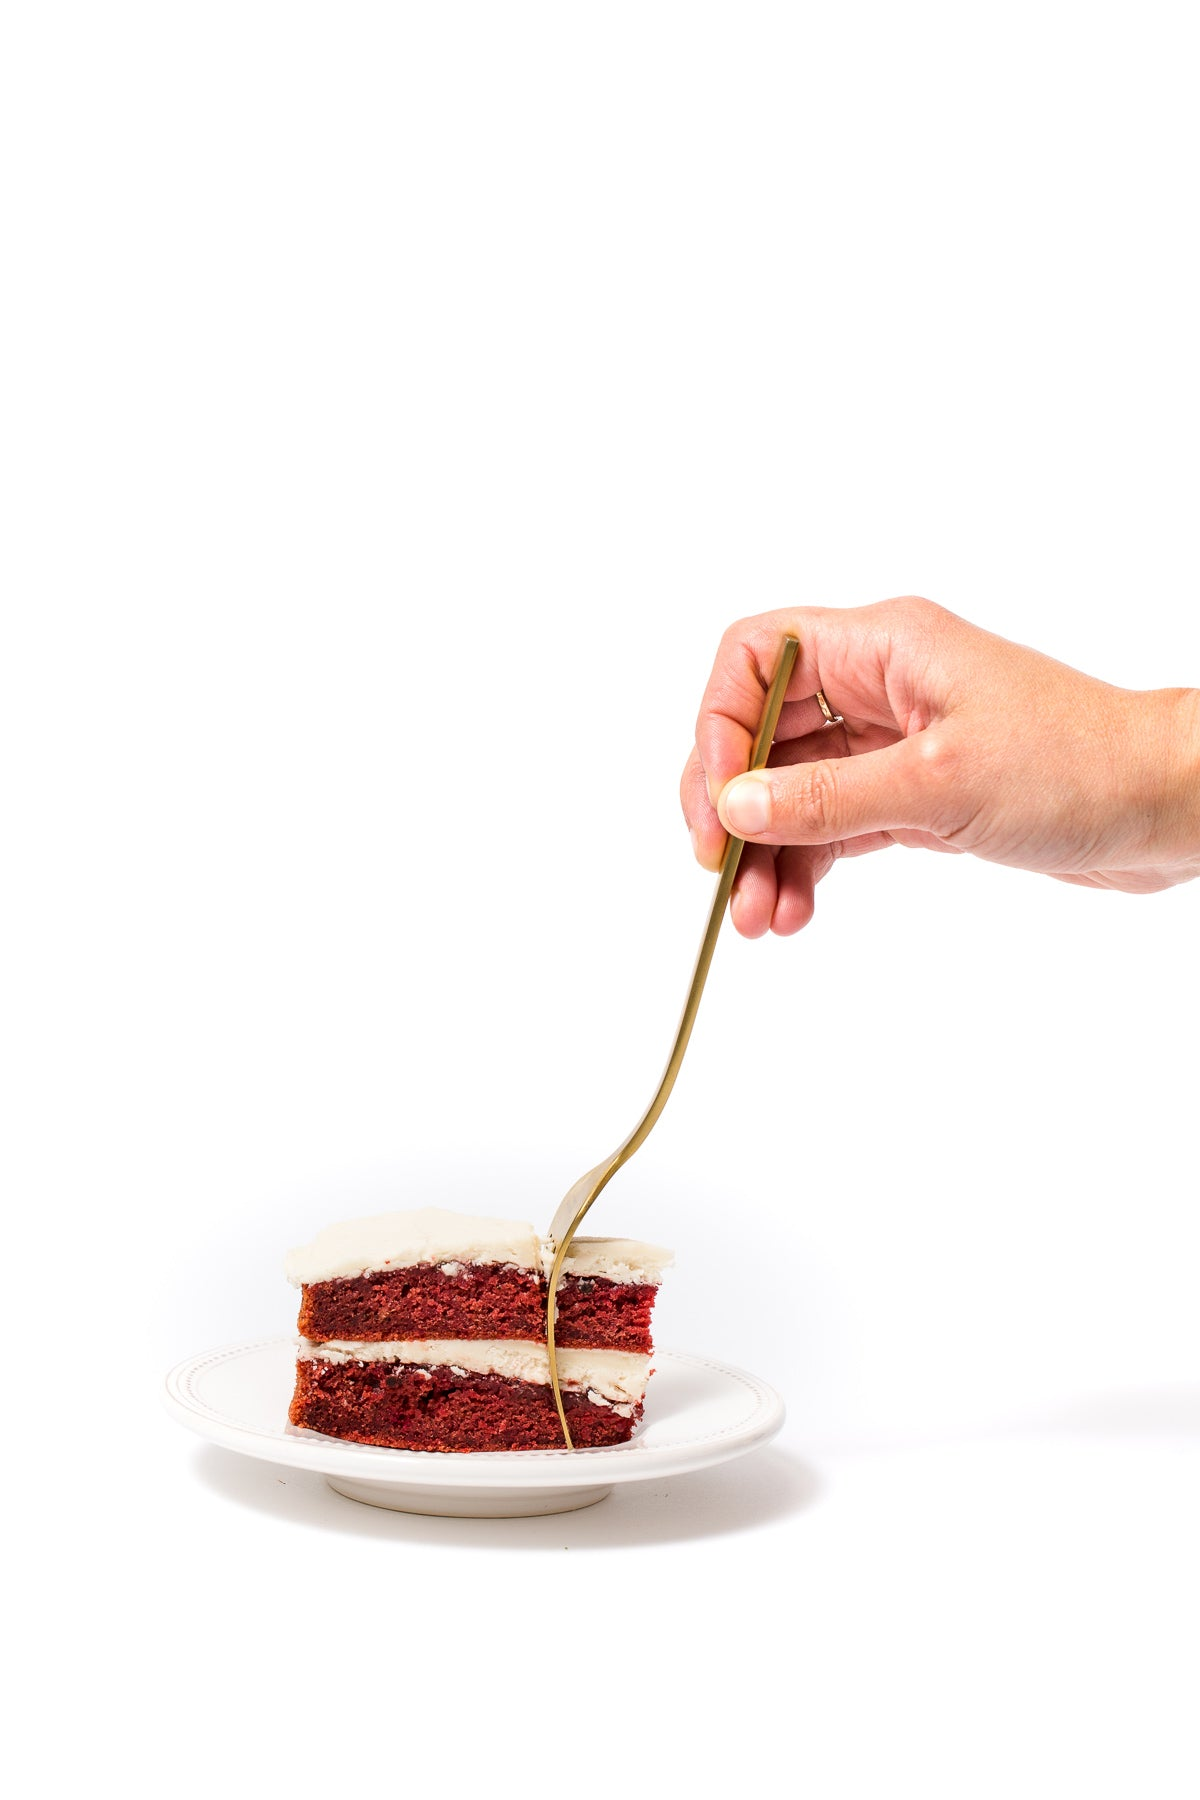 Image of slice of Miss Jones Baking Co Beet Red Velvet Layer Cake with a fork inserted into it by a hand